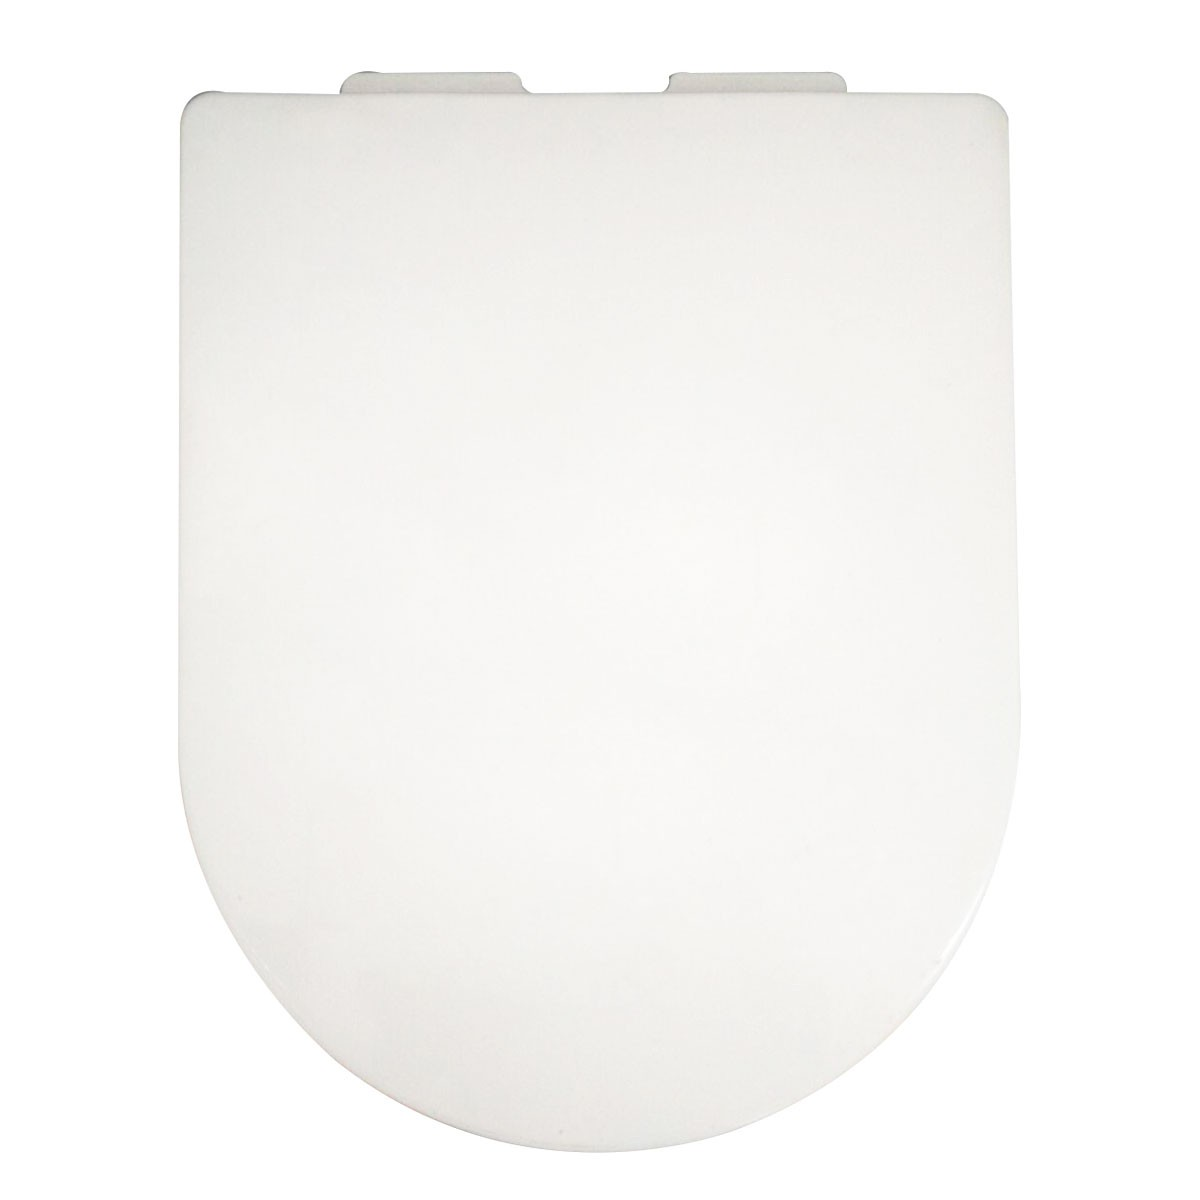 White Soft Close Toilet Seat with Cover (DK-CL-031)